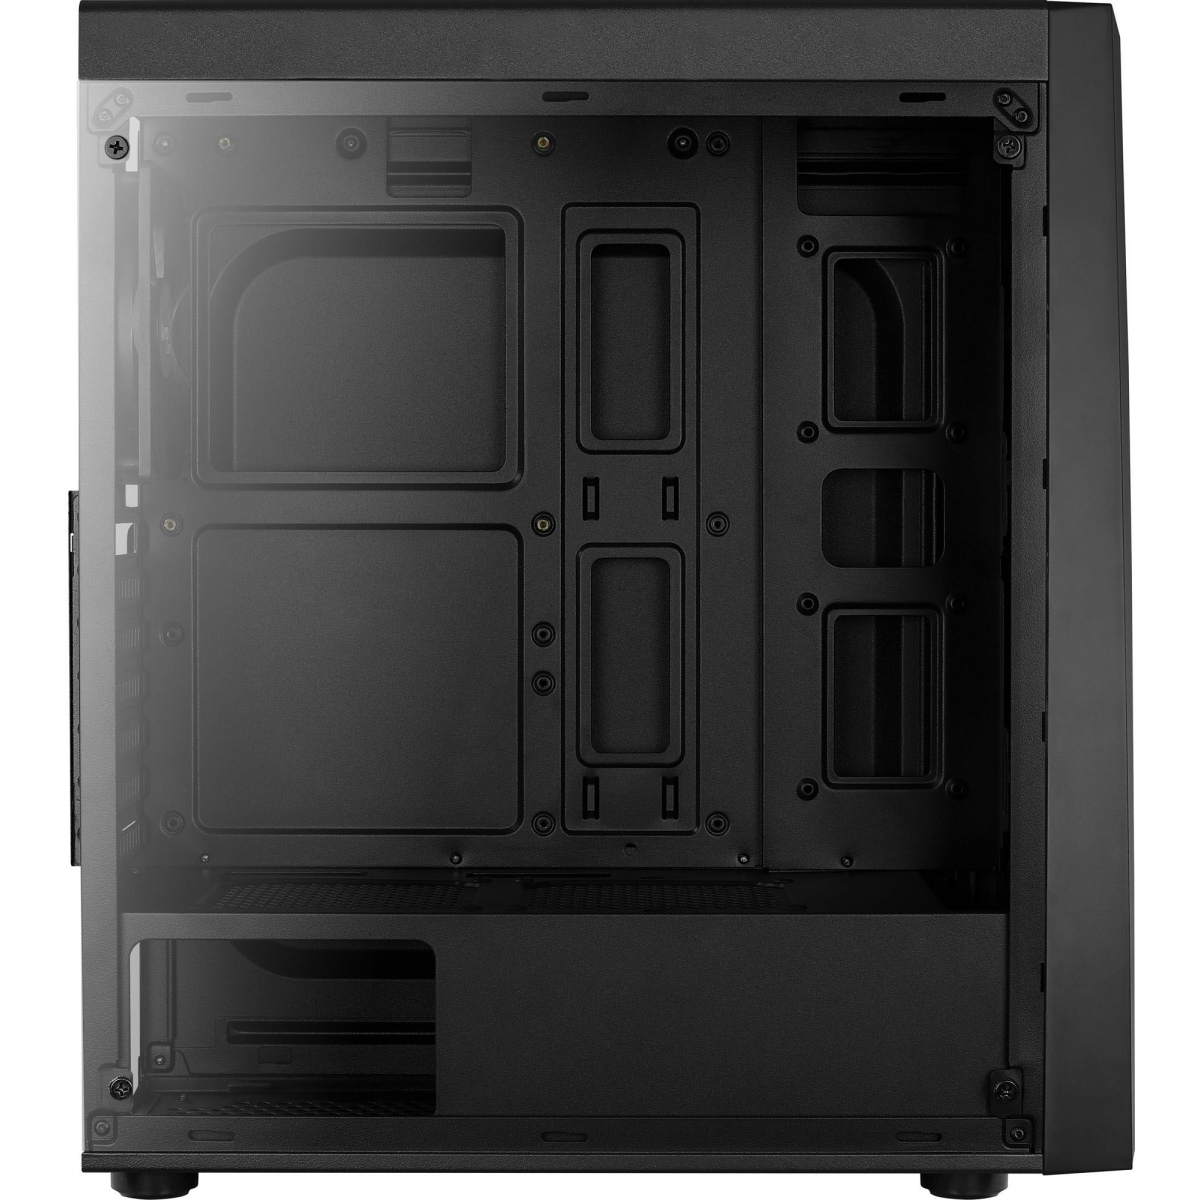 Gabinete Gamer Aerocool Bolt RGB, Mid Tower, Com 1 Fan, Lateral em Acrílico, Black, S-Fonte